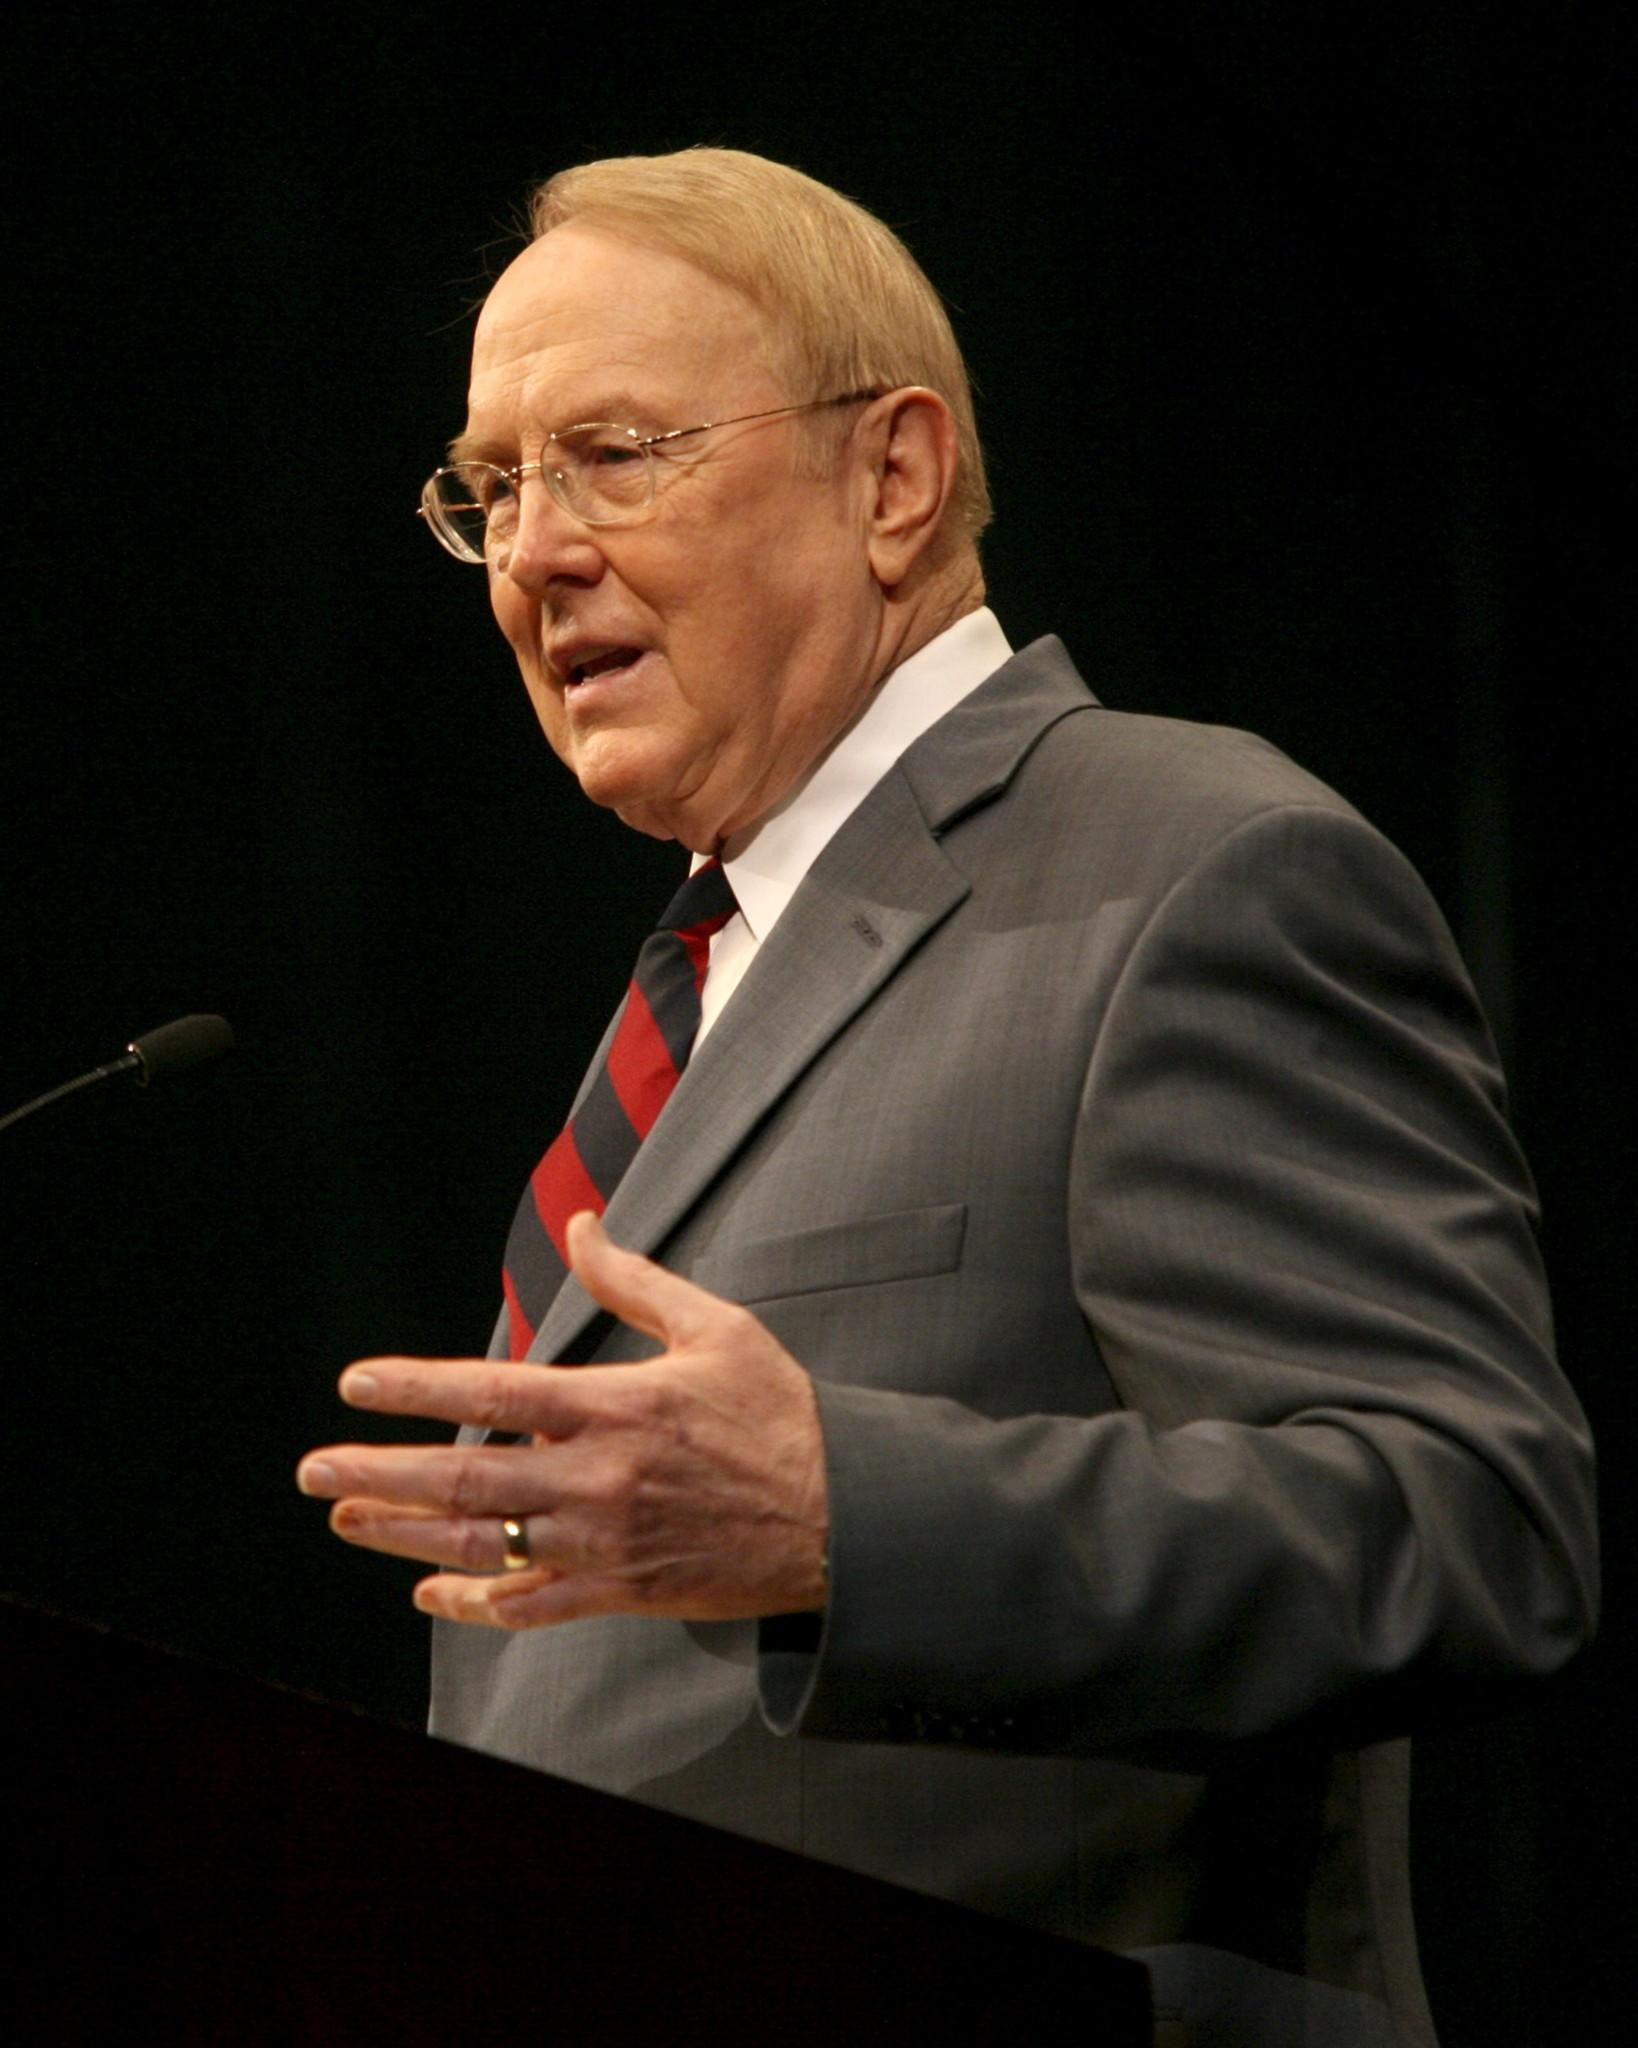 """James Dobson, seen in 2006, said on his radio show: """"God made us male and female. You just don't choose gender."""""""